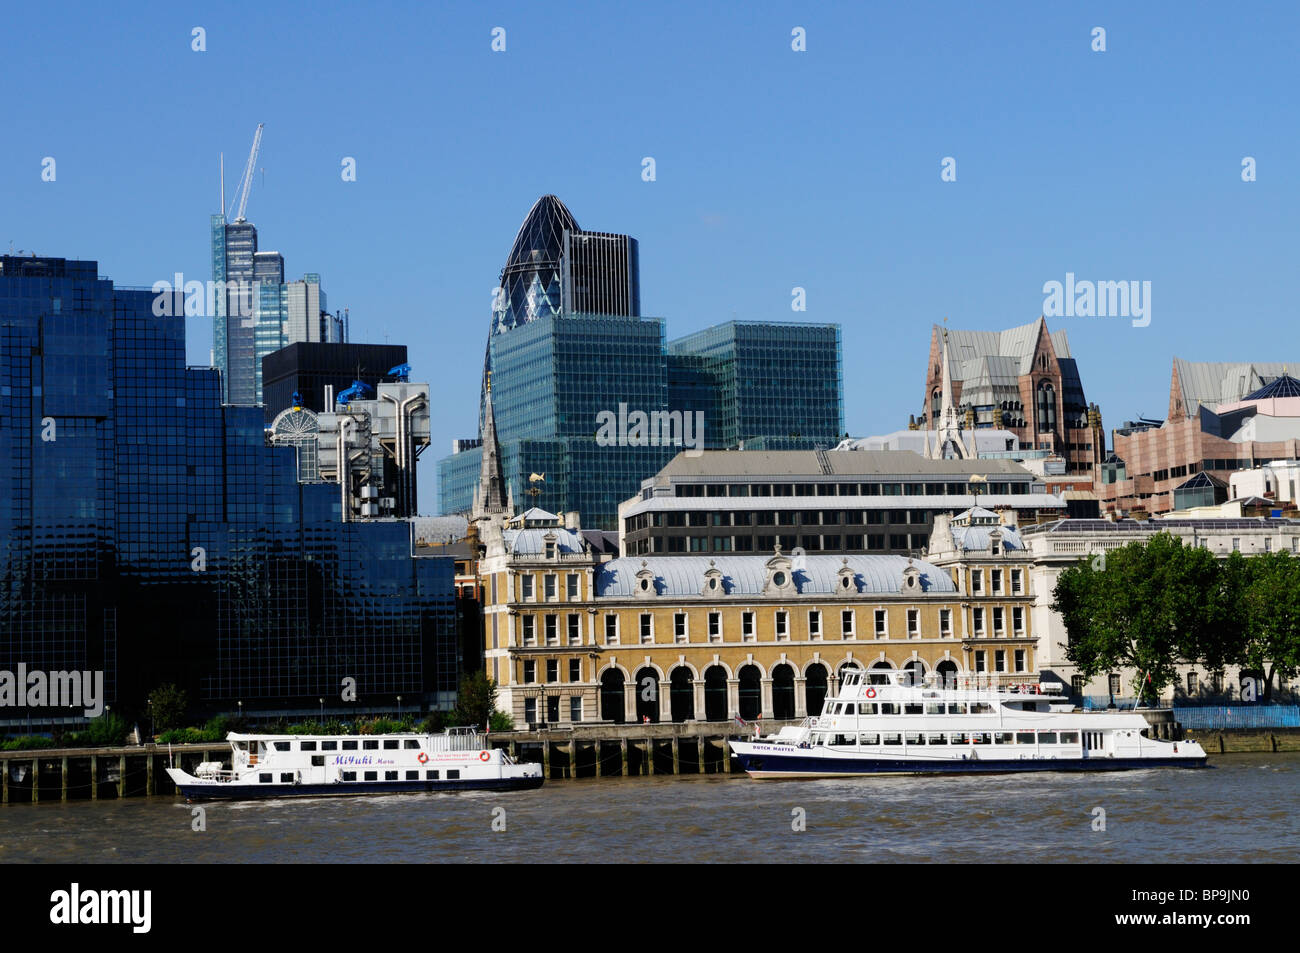 River Thames Cruise boats and city of London buildings, London, England, UK - Stock Image